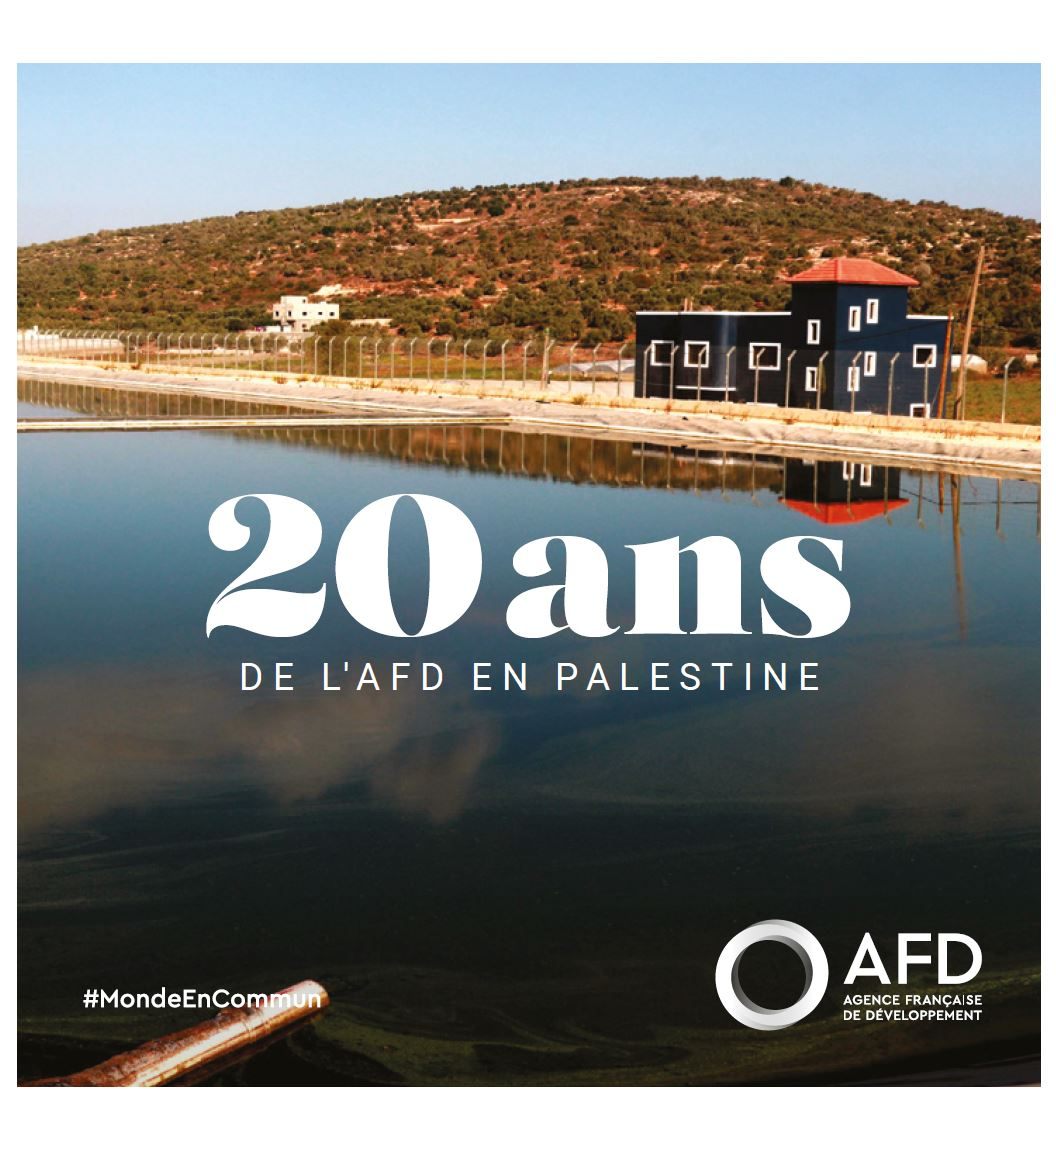 AFD : 20 years in Palestine